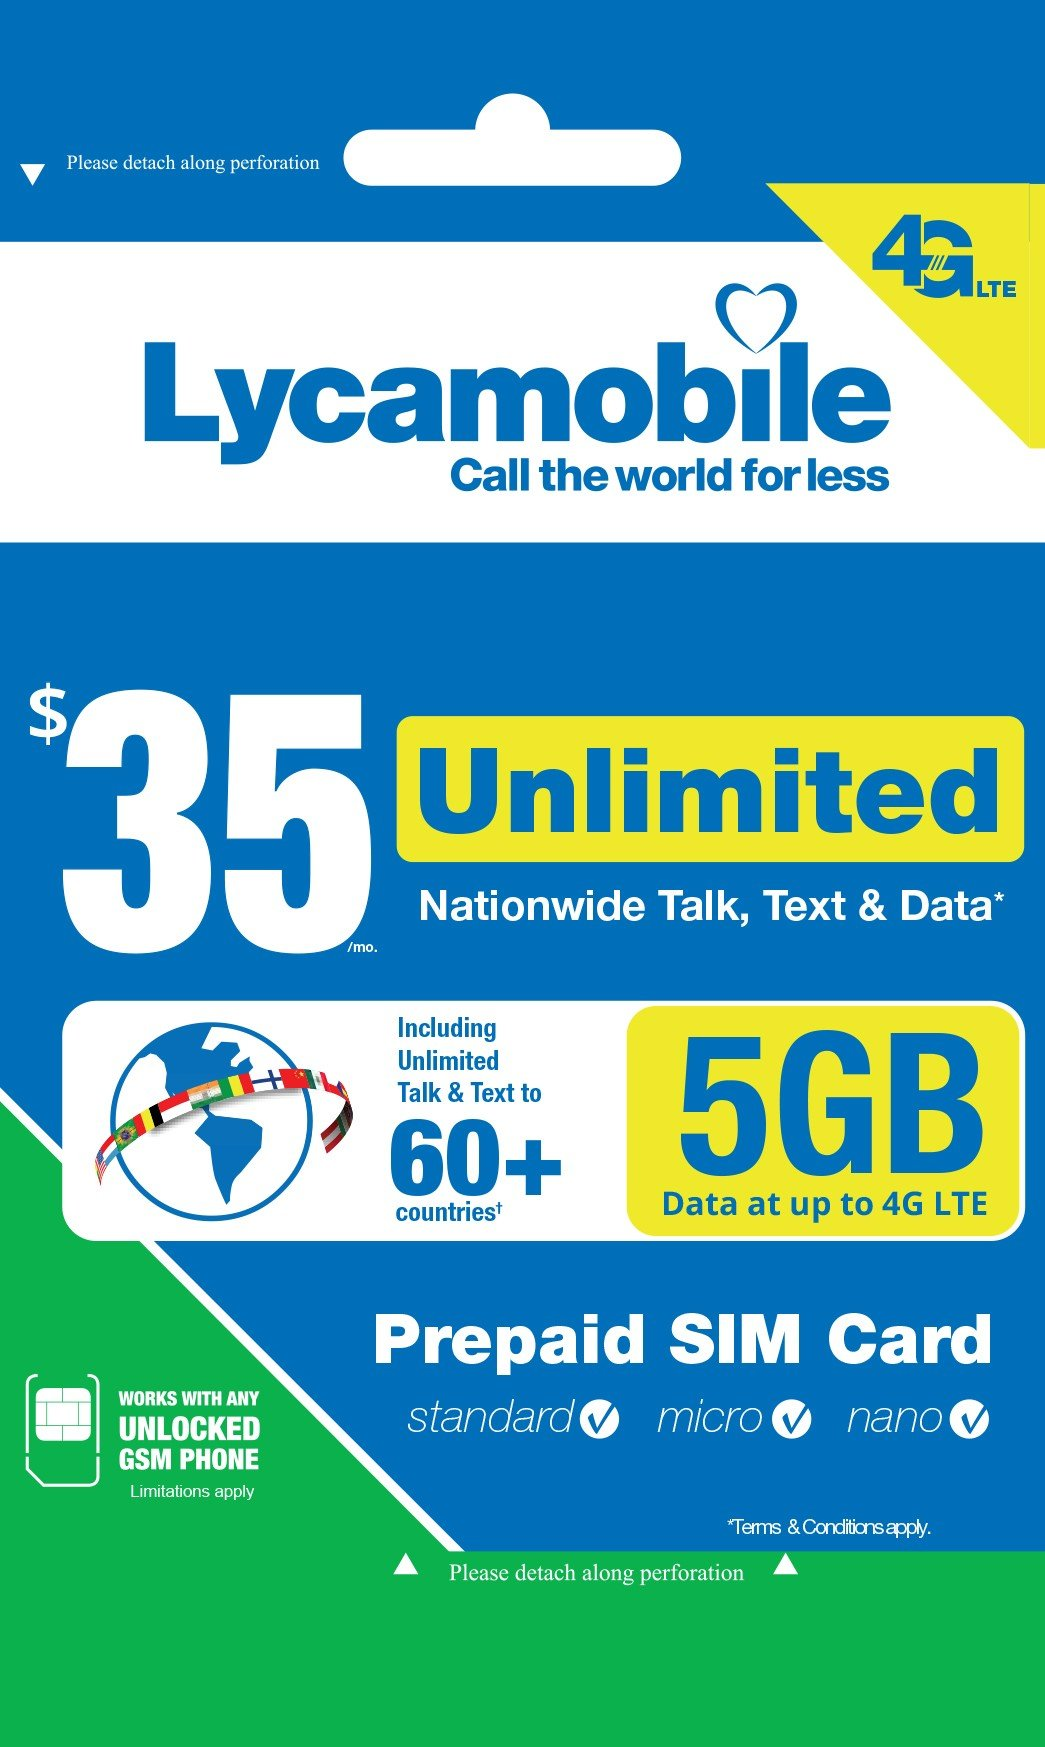 Lycamobile $35 Plan 1st Month Included SIM Card is Triple Cut Unlimited Natl Talk & Text to US and 60+ Countries 6GB Of 4G LTE by Spartan Technologies